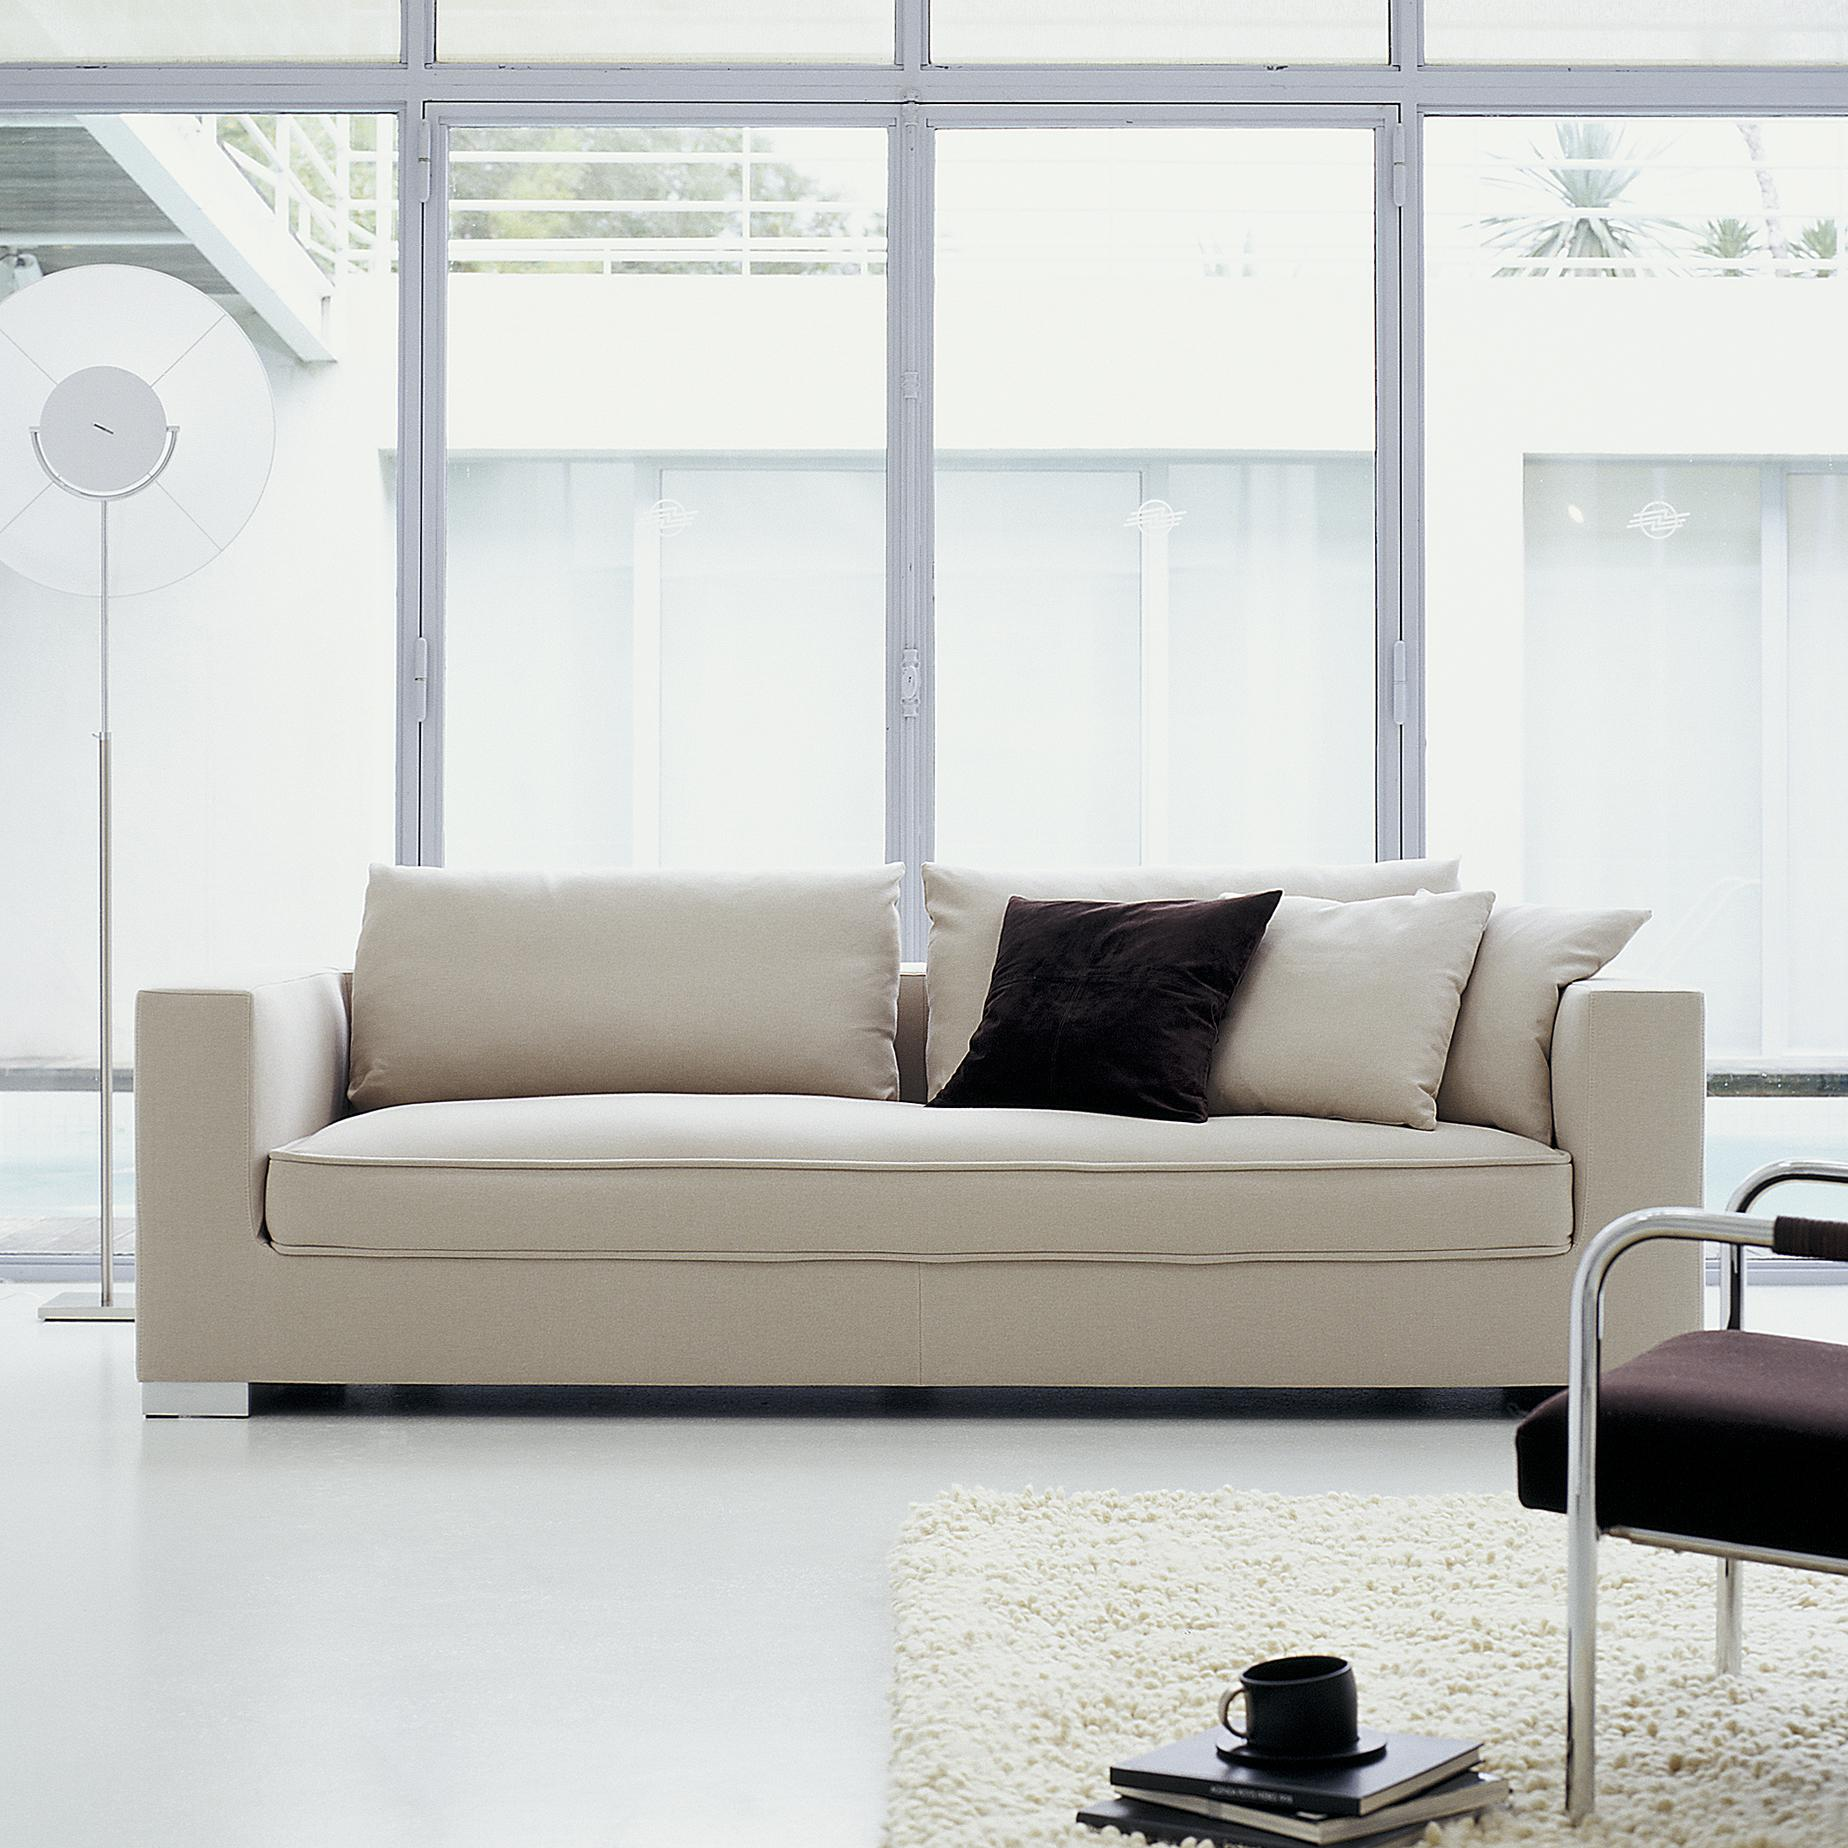 rive gauche sofas from designer didier gomez ligne roset official site. Black Bedroom Furniture Sets. Home Design Ideas